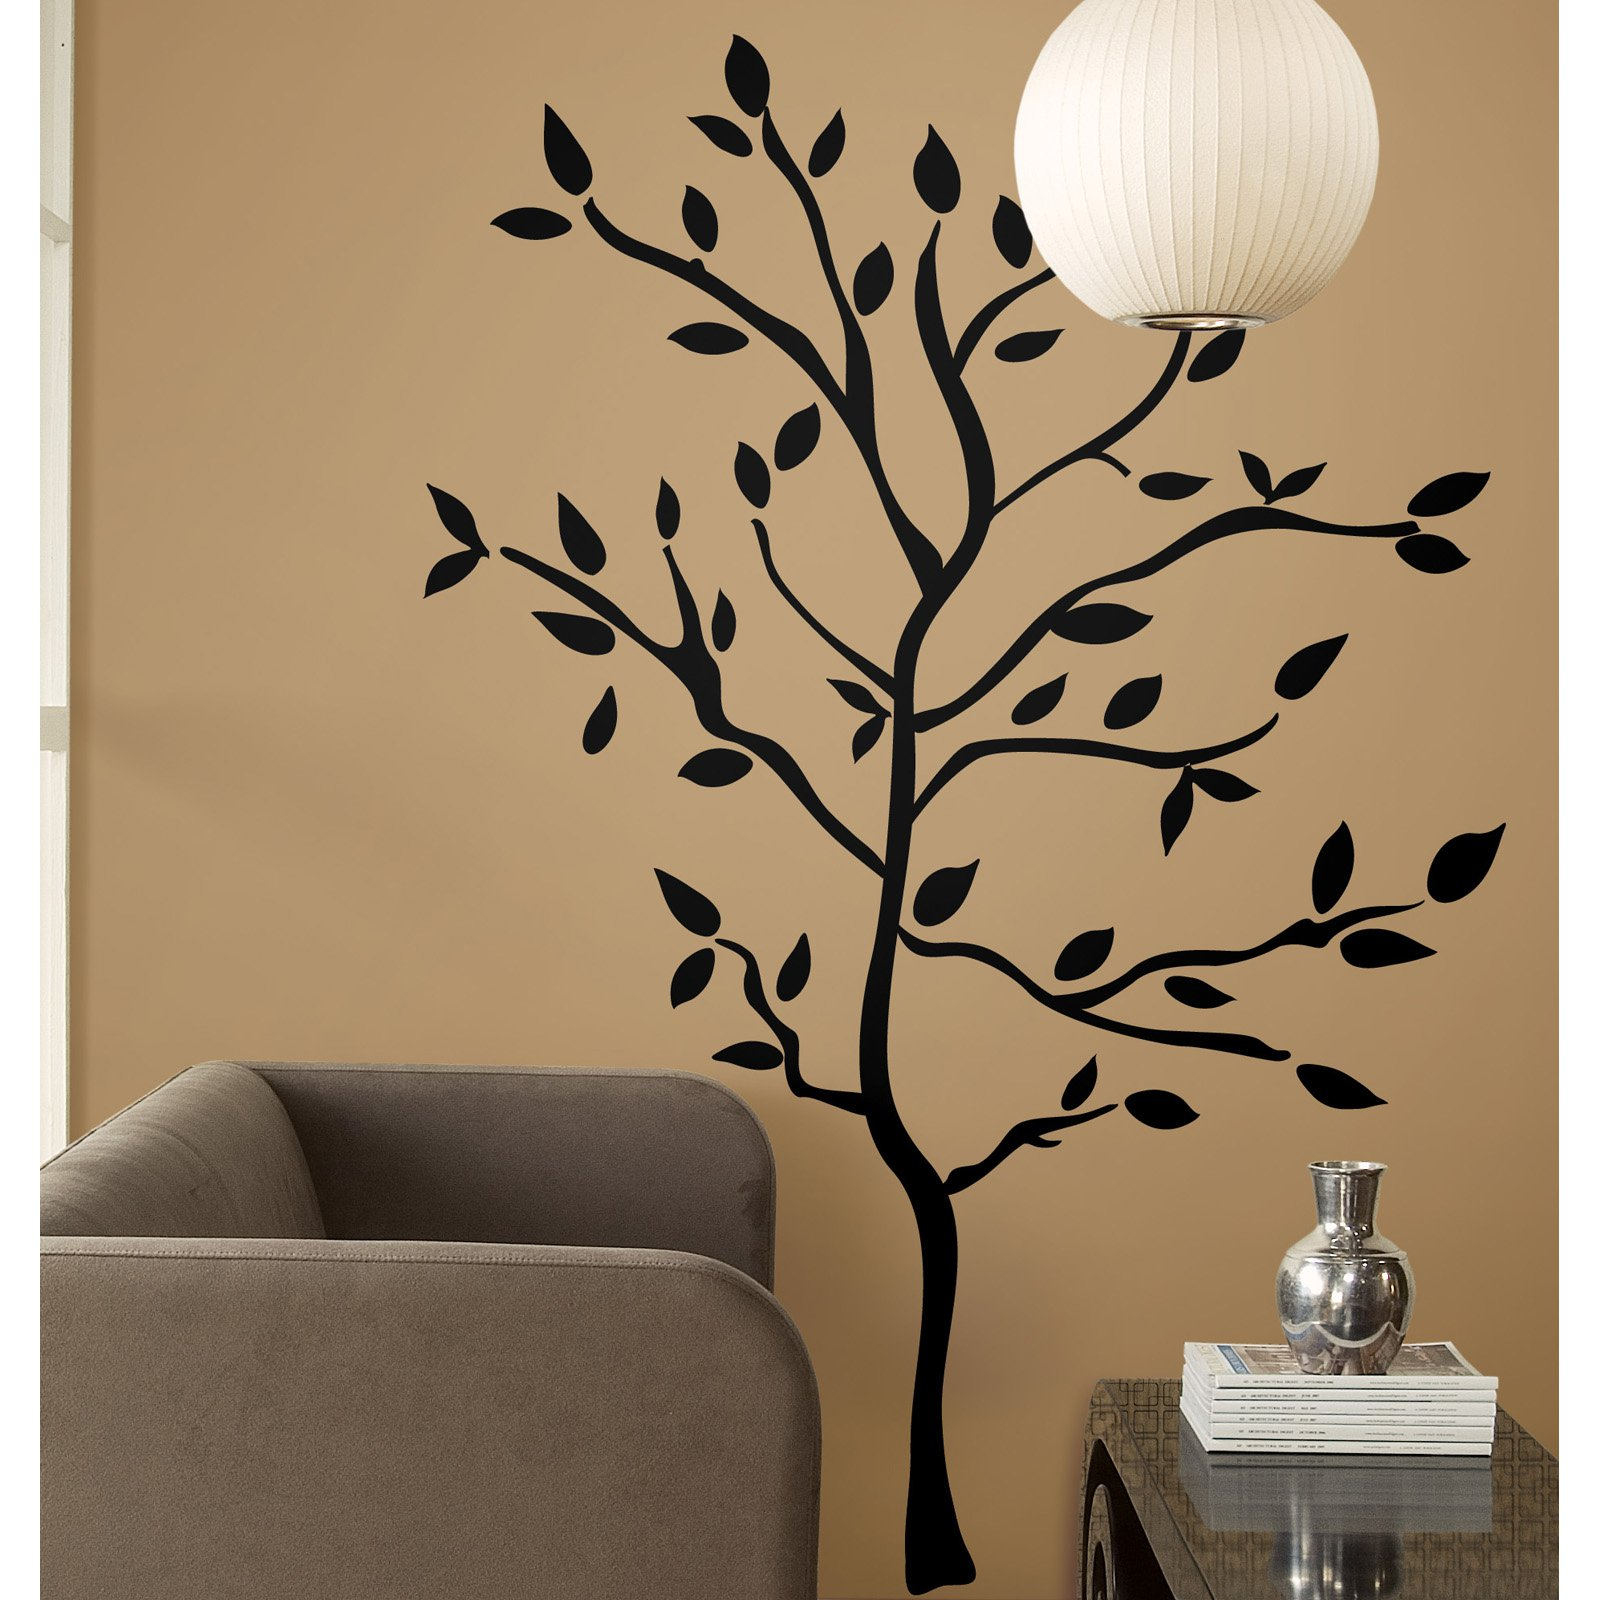 Awesome Tree Branches Peel And Stick Wall Decals